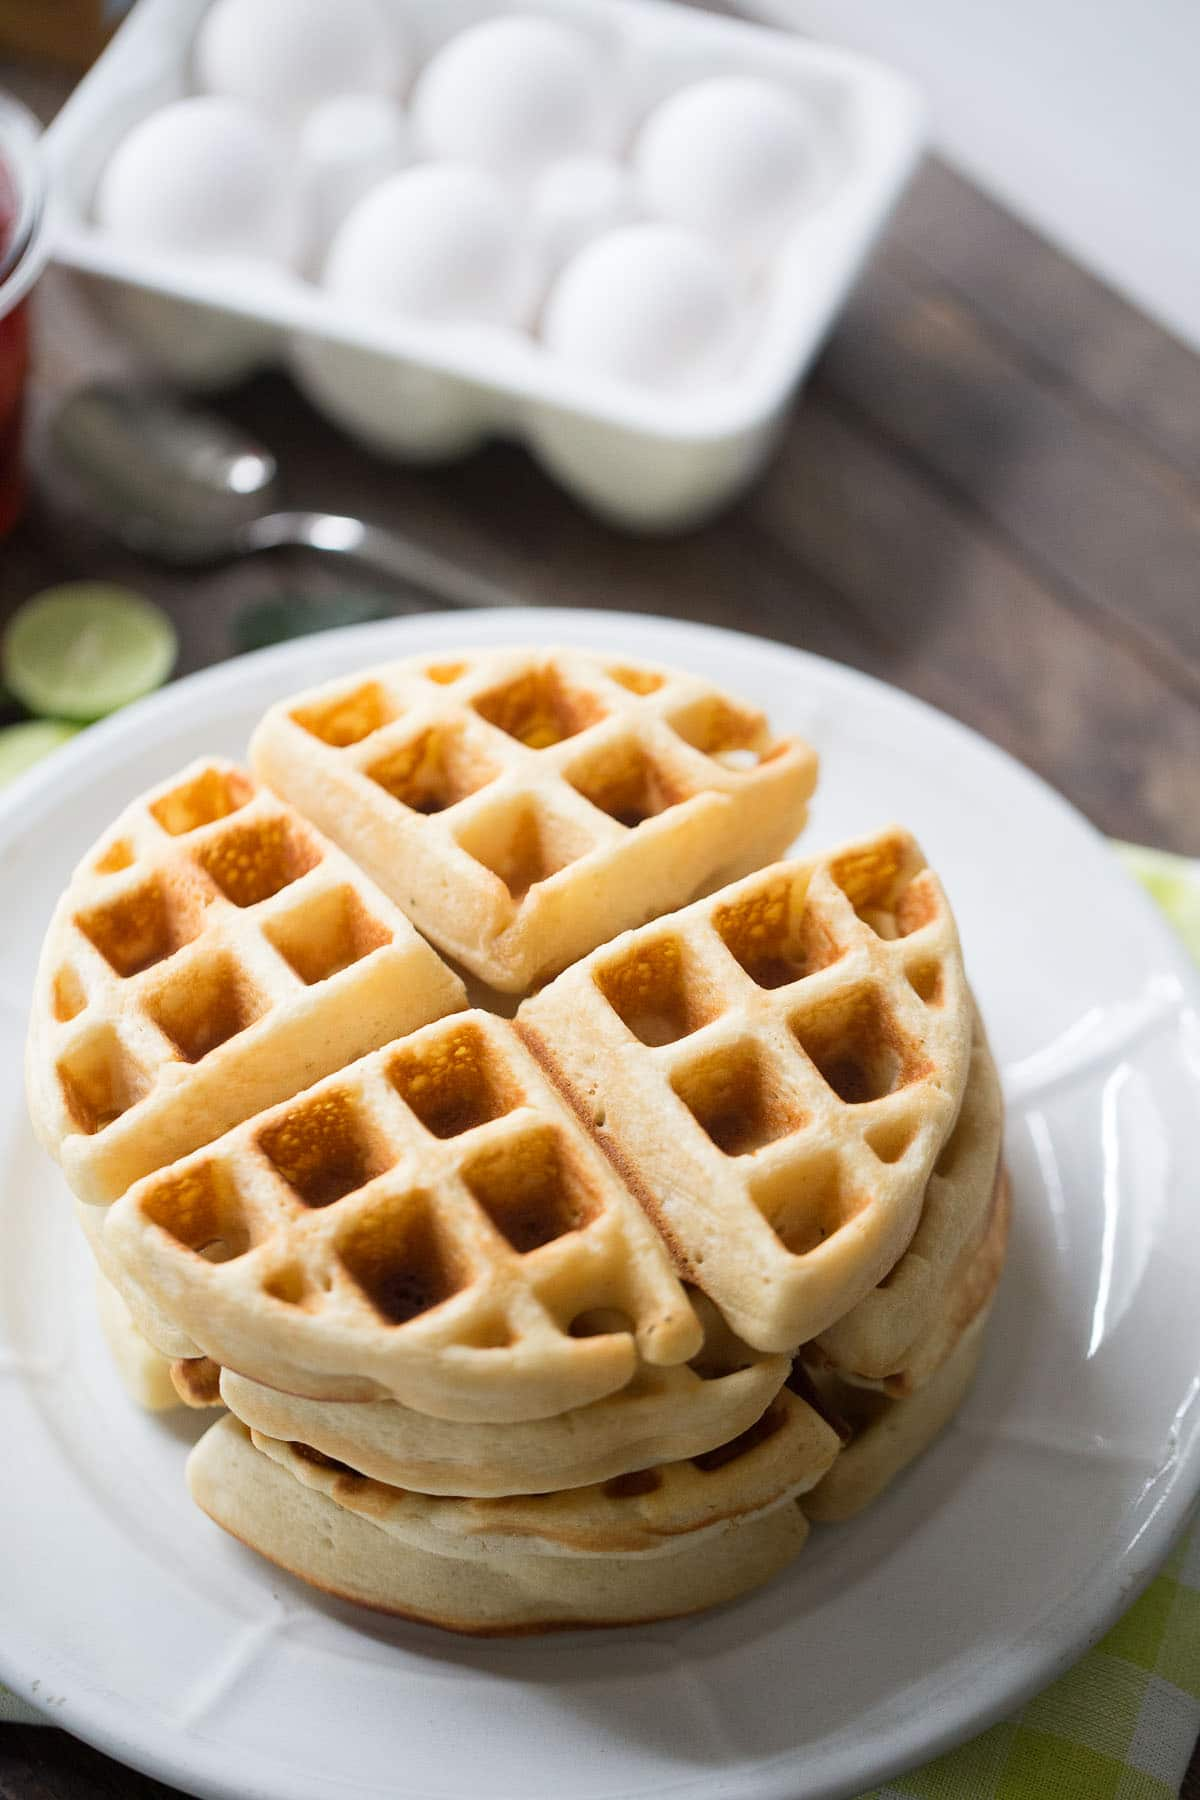 Homemade Belgian waffle recipe that is perfect for summer; fresh key lime flavor and sweet strawberries make this breakfast unbelievable!